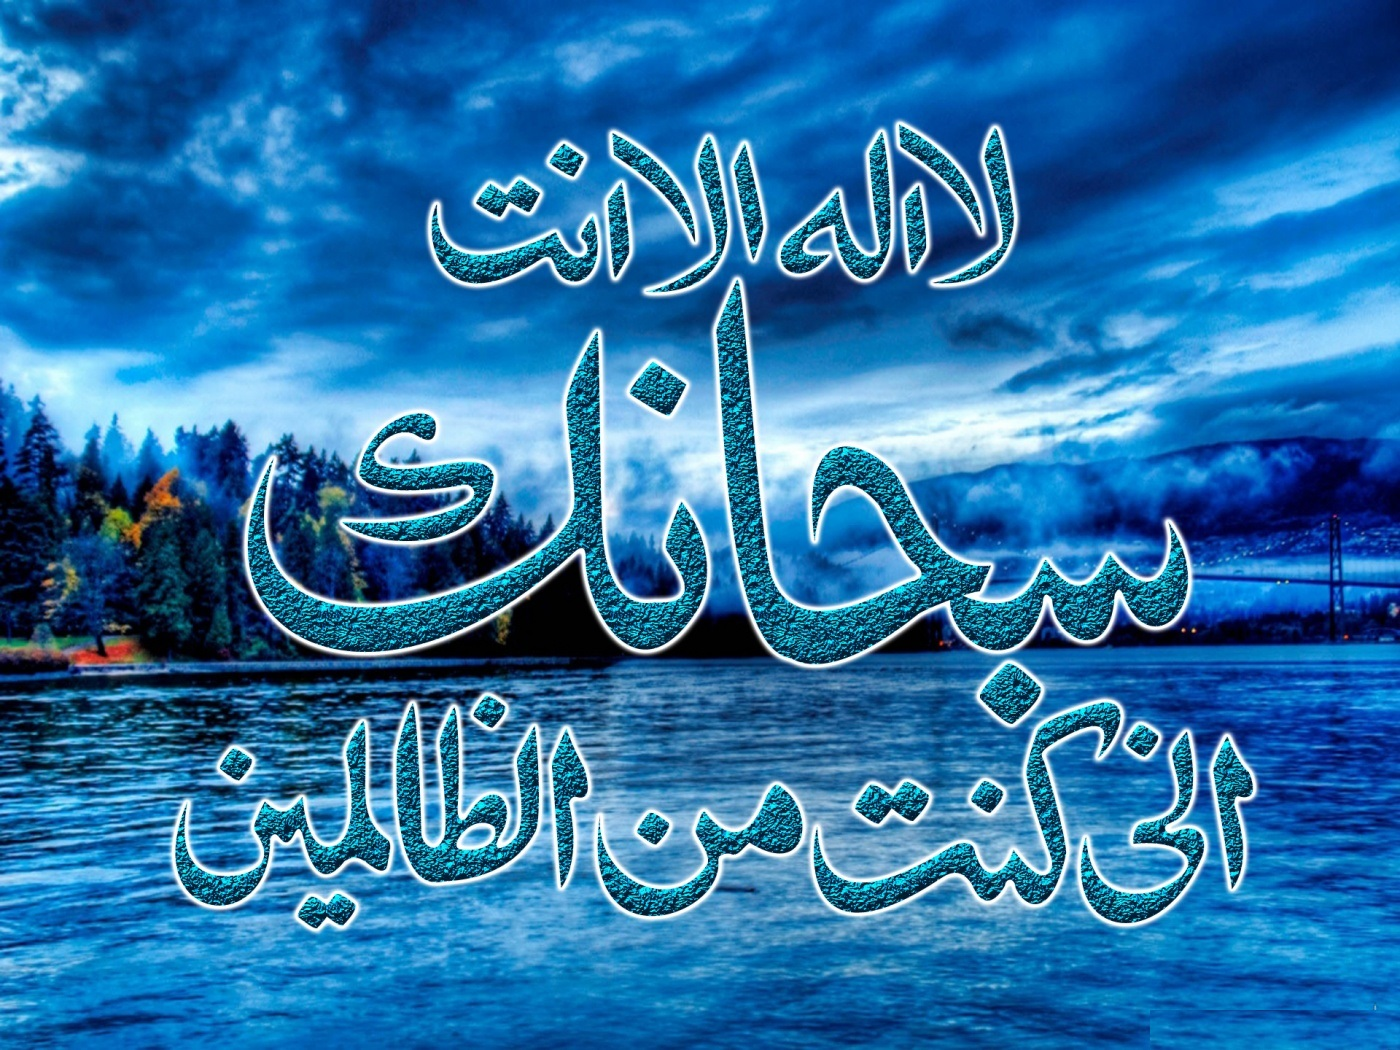 New Islamic Wallpaper Free Download